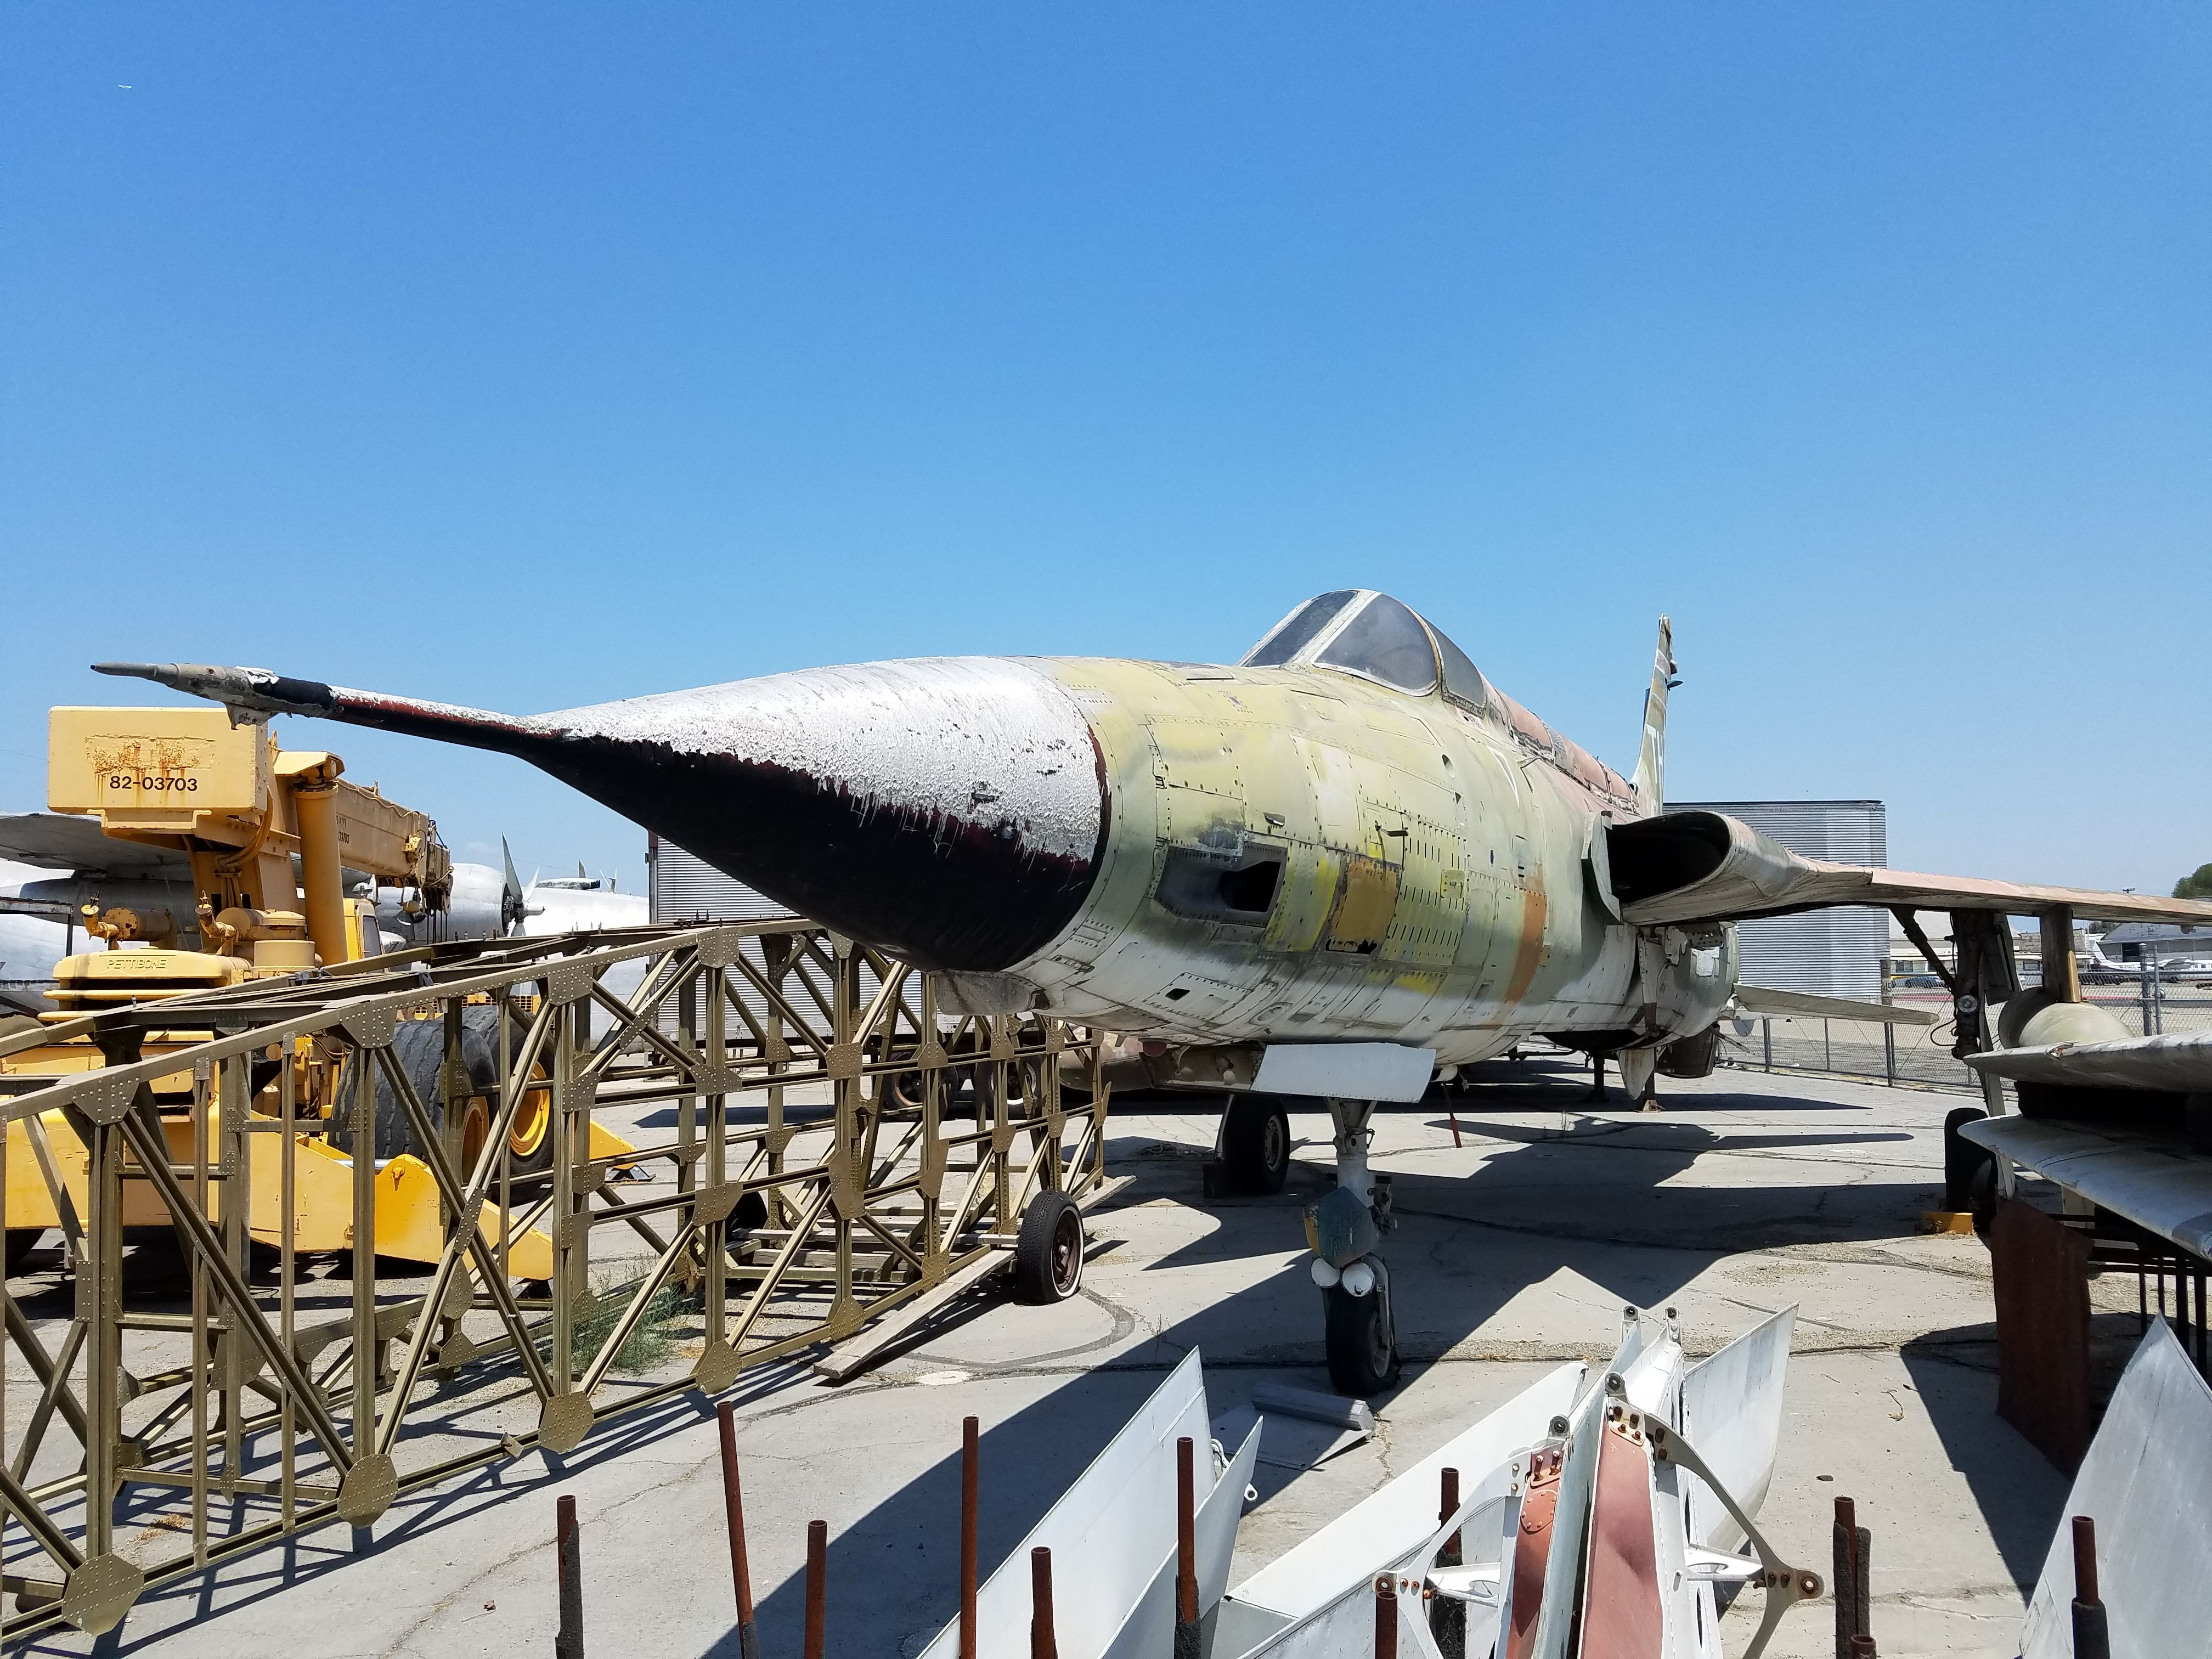 F105 from the boneyard at the Yanks Aircraft Museum in